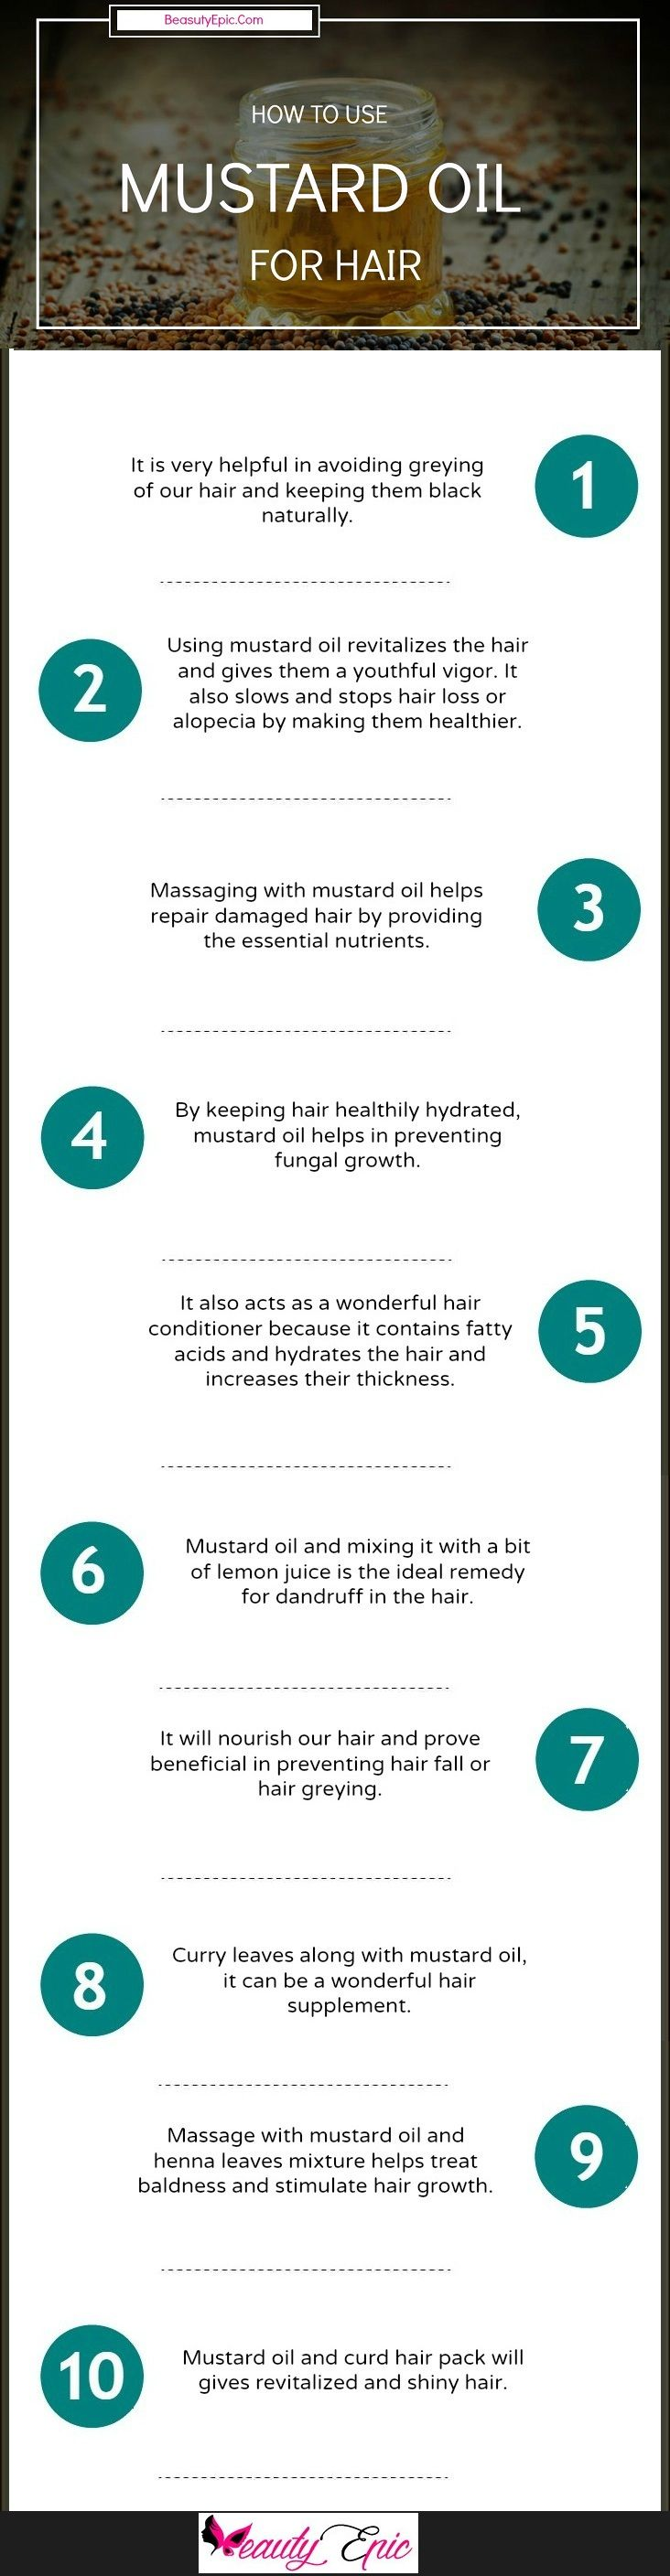 10 Best Ways to Use Mustard Oil for Hair